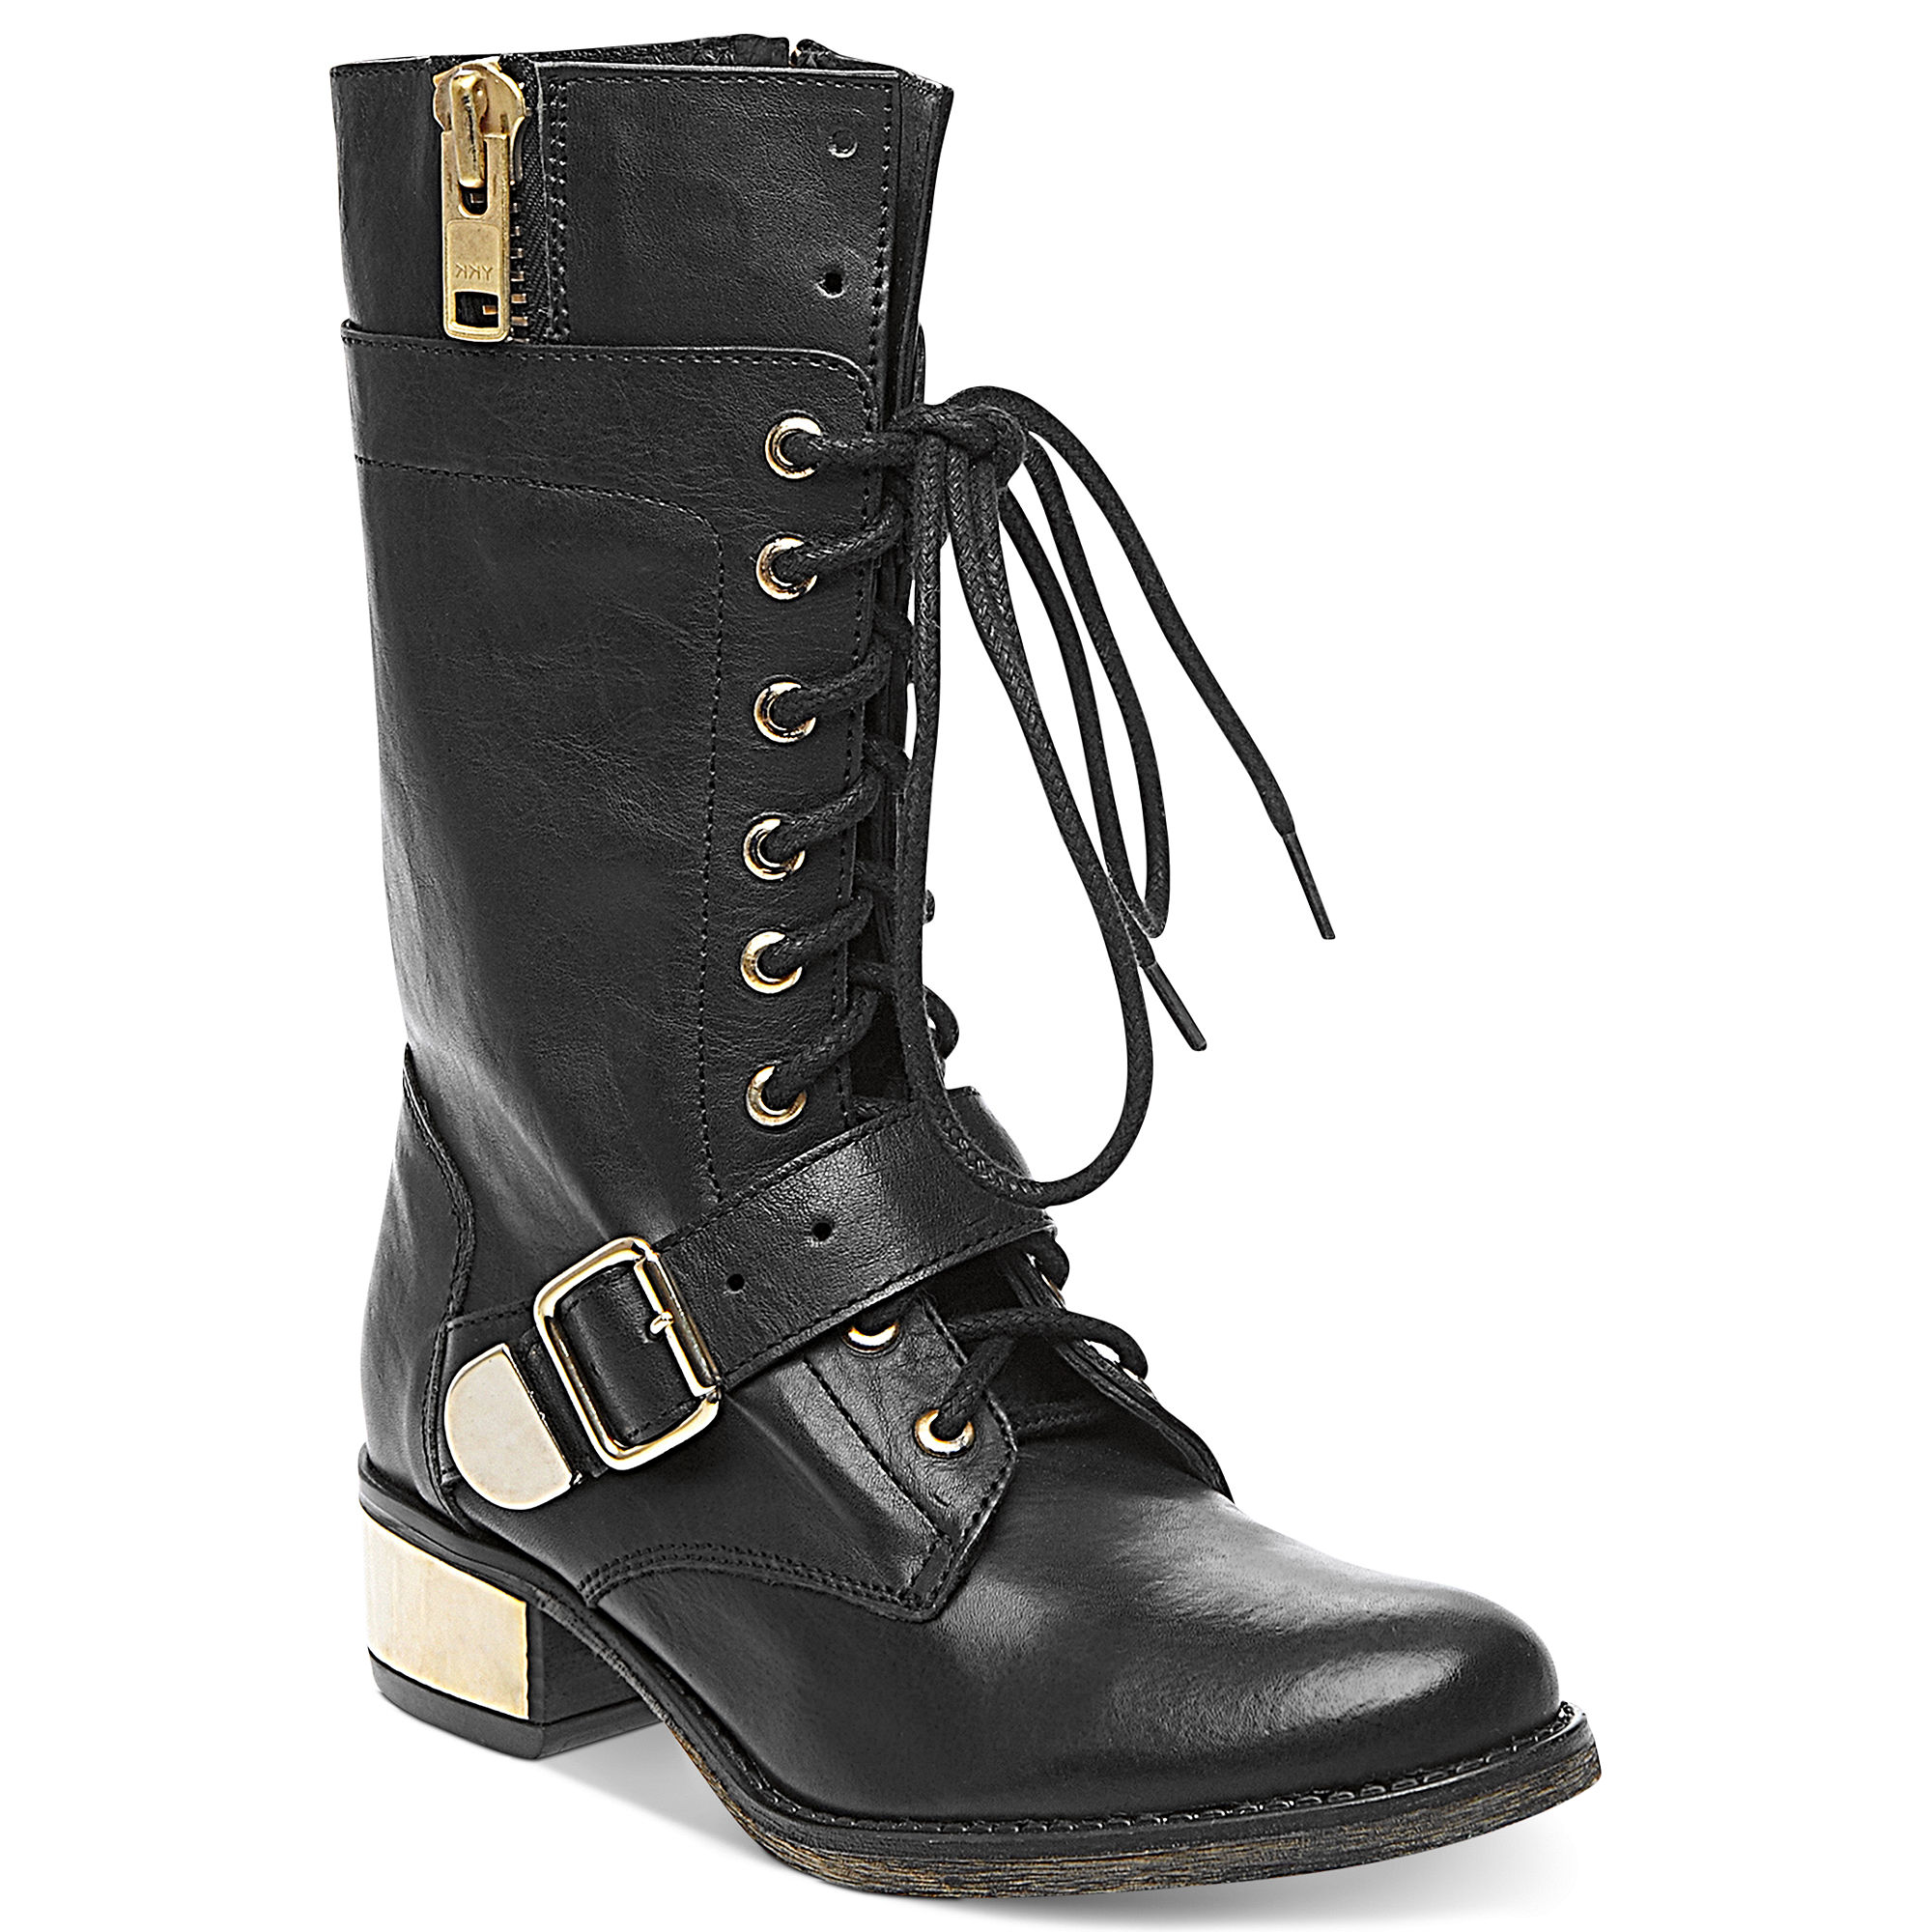 Steve Madden Lollly Combat Boots in Black   Lyst Steve Madden Combat Boots Men